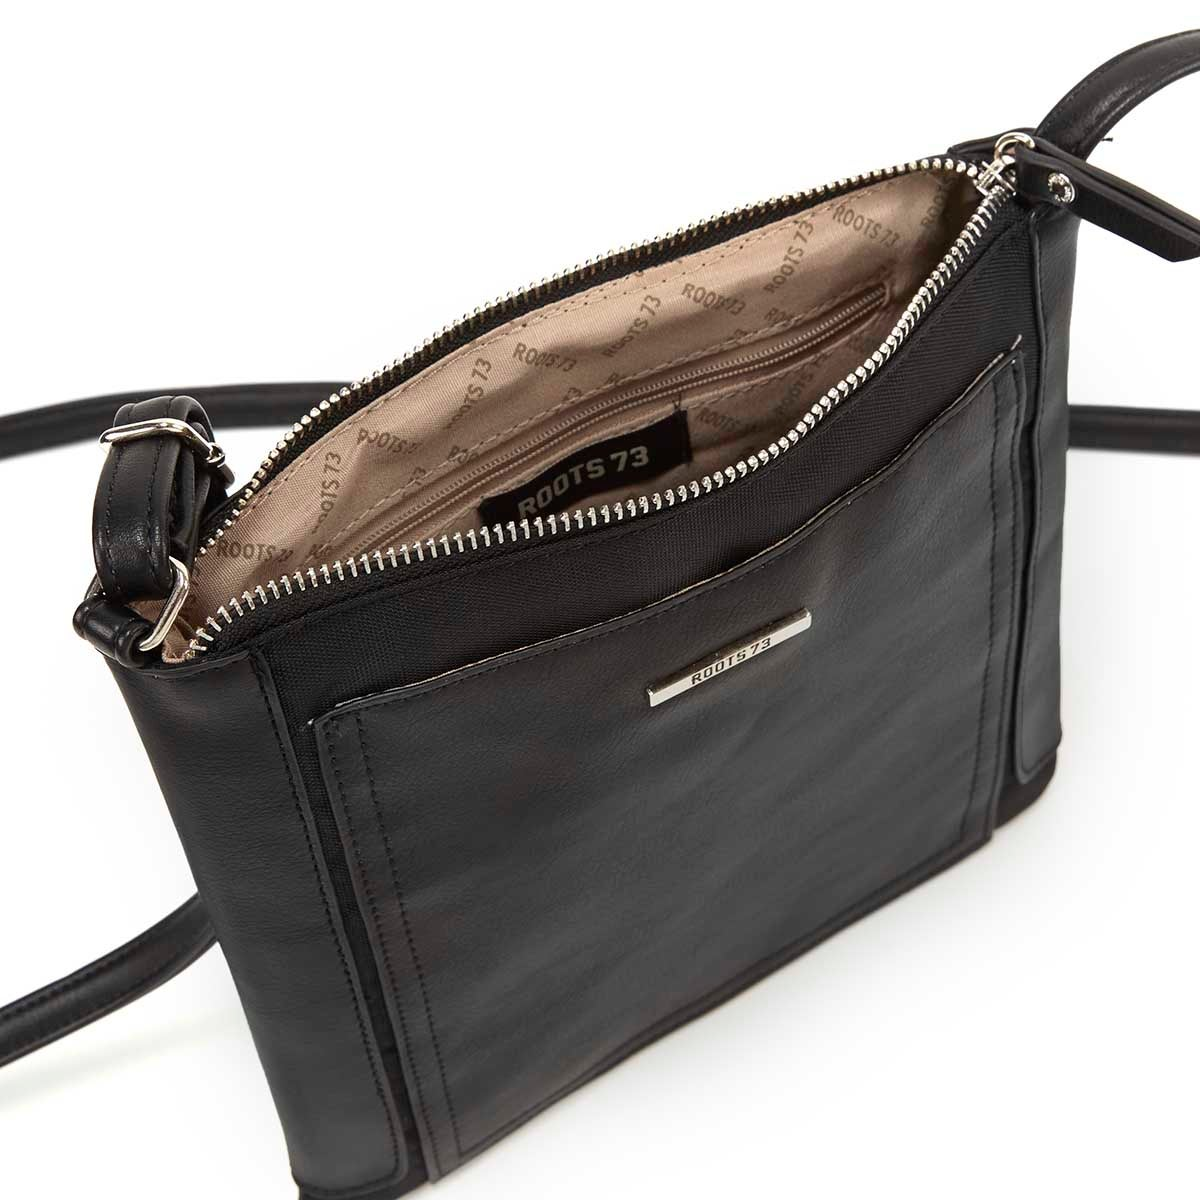 Lds Roots73 blk north south crossbody